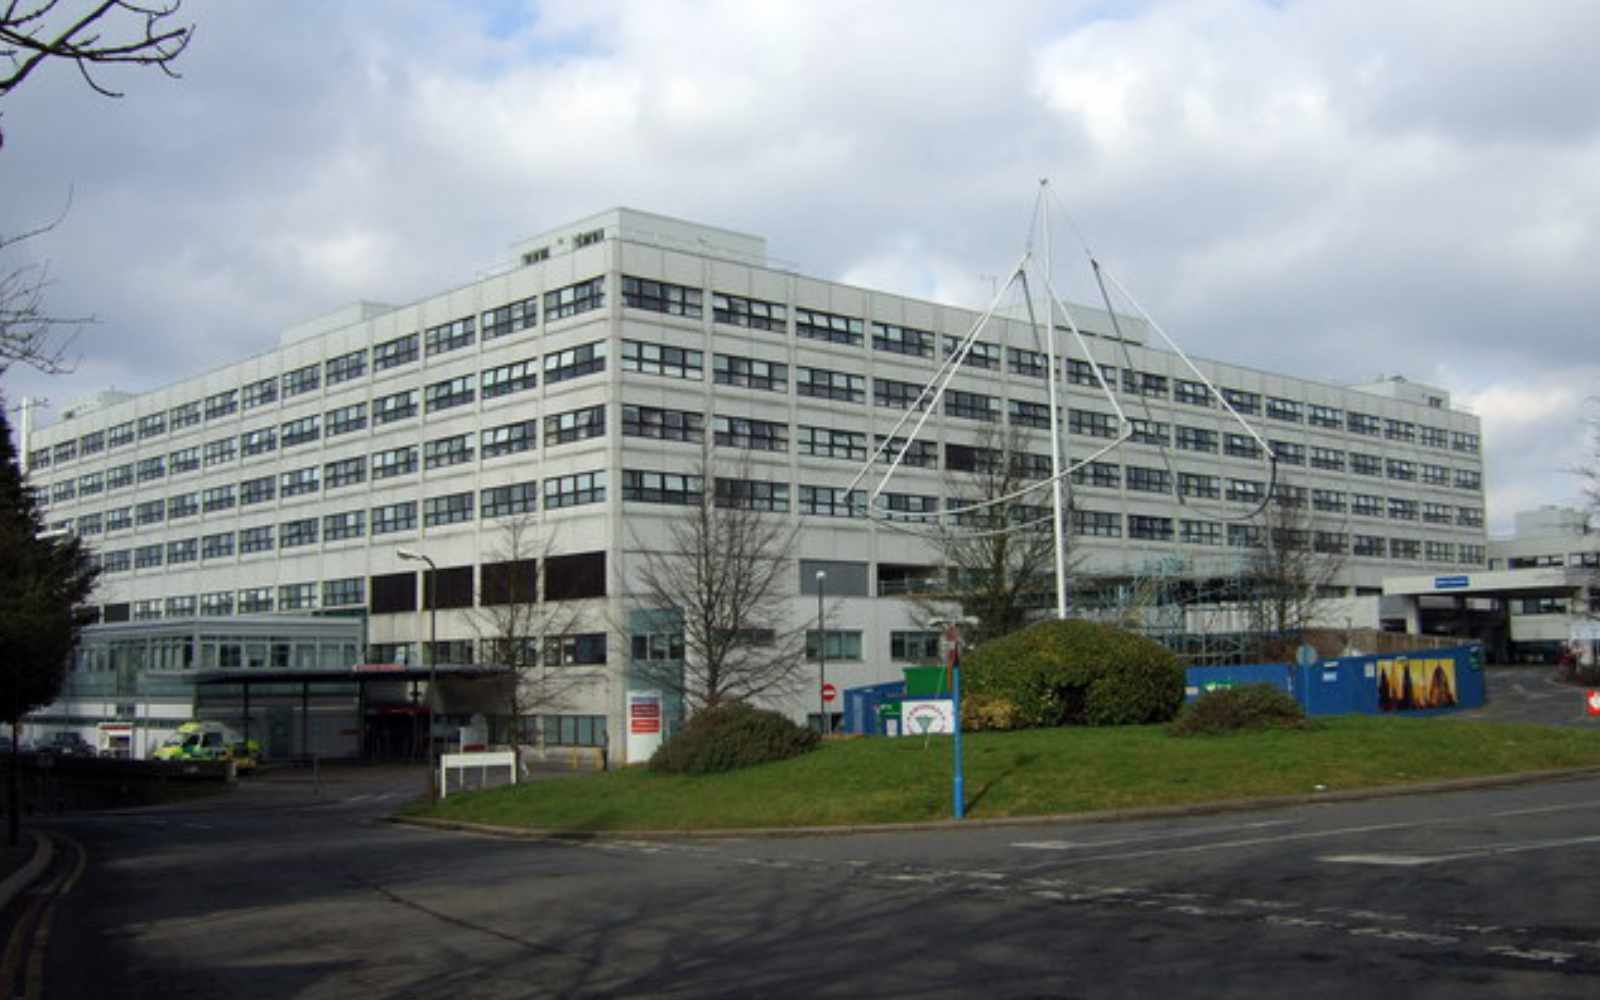 Healthcare Furniture For The John Radcliffe Hospital, Oxford